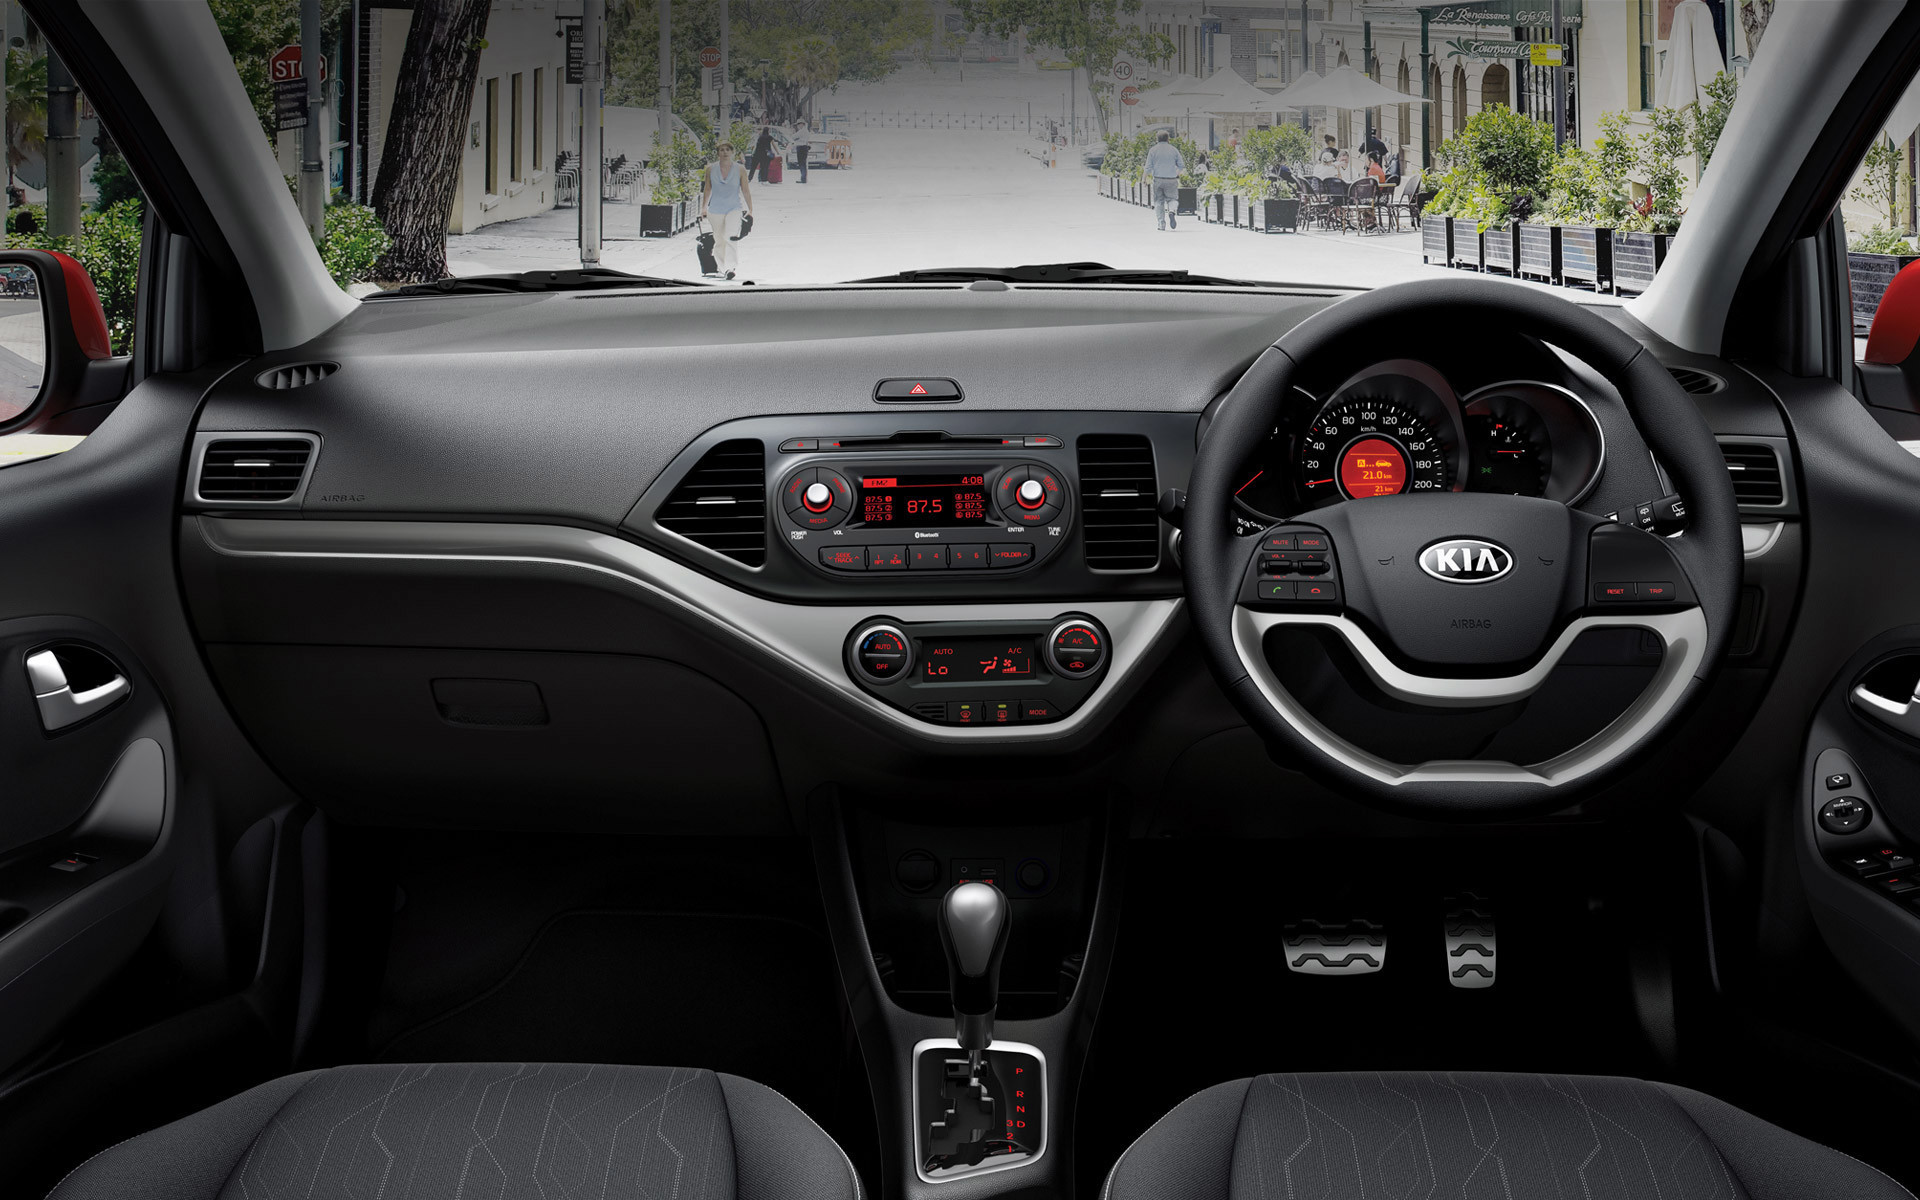 KIA Picanto in Pakistan: Details Available 11